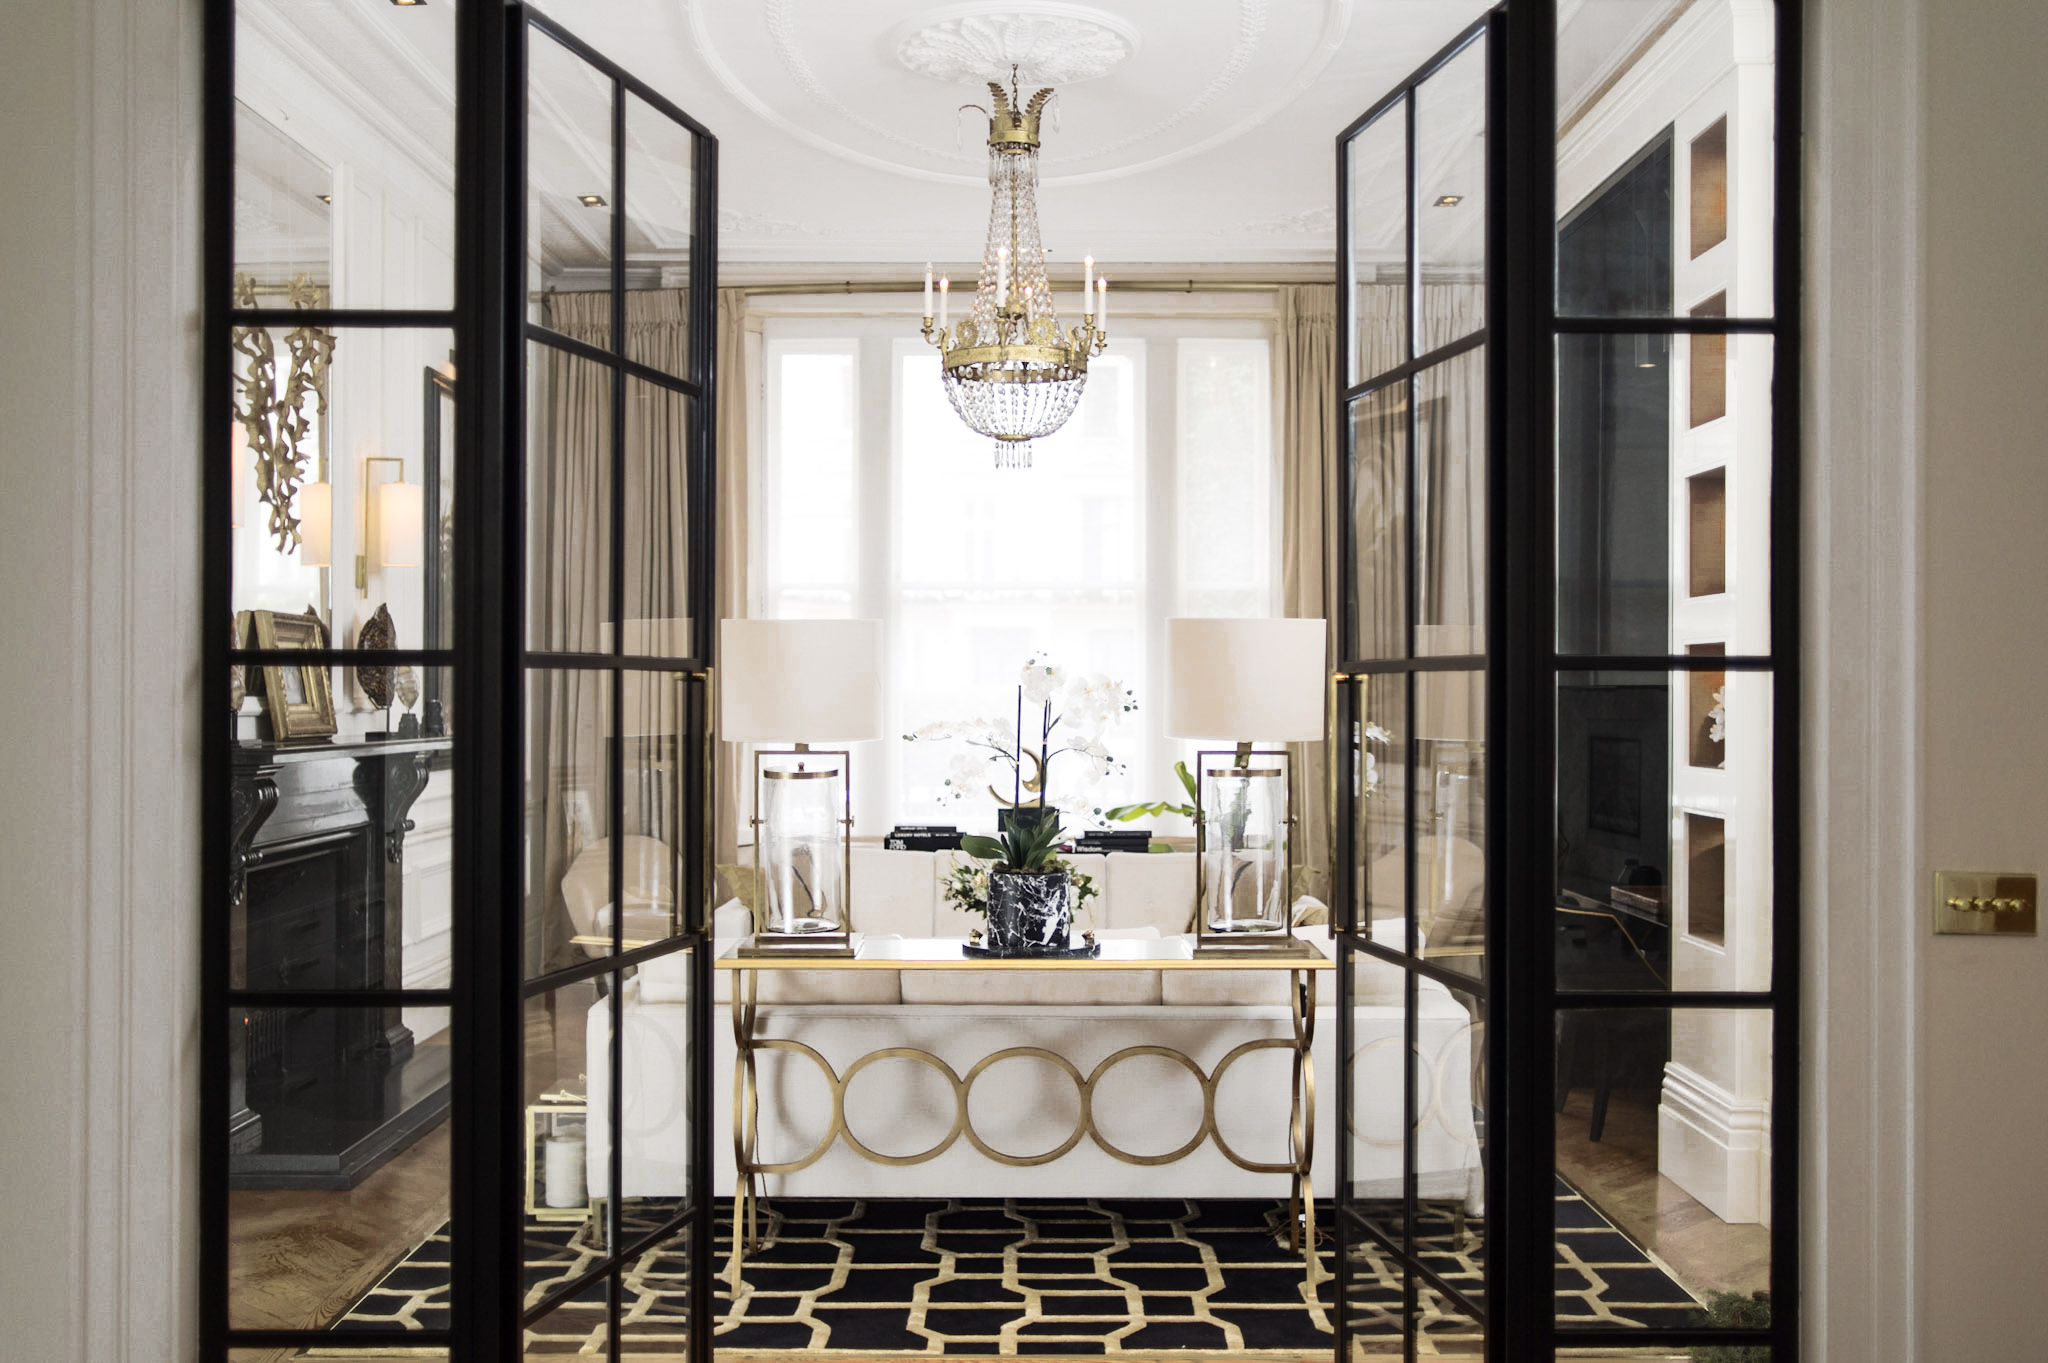 Steel-and-glass doors by  Clement  bring a softly industrial feel to this period setting, while a decorative console from  Jonathan Charles  adds an Art Deco touch. Every sight line was considered. It's a real luxury if every view is a beautiful one.